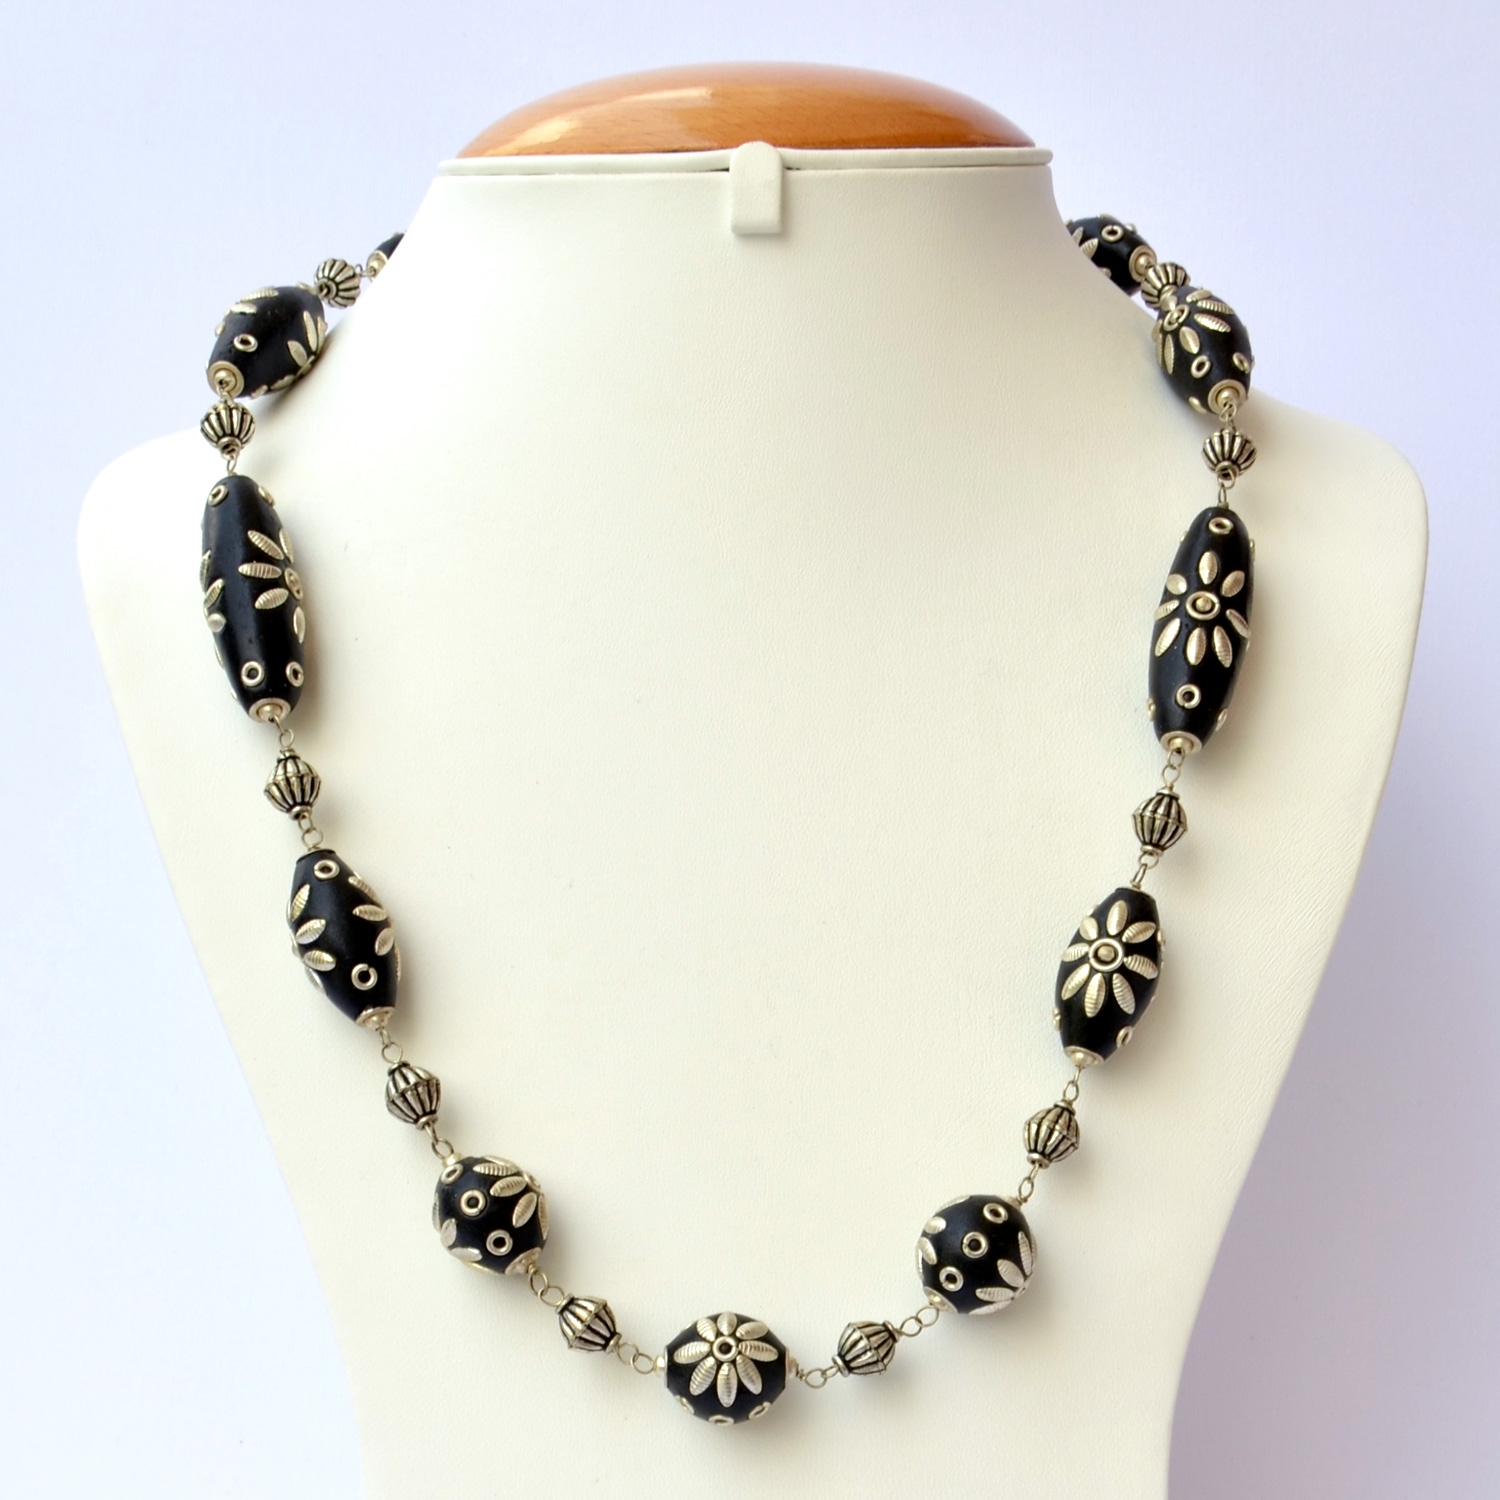 Handmade Necklace with Black Beads having Metal Flower Design ...